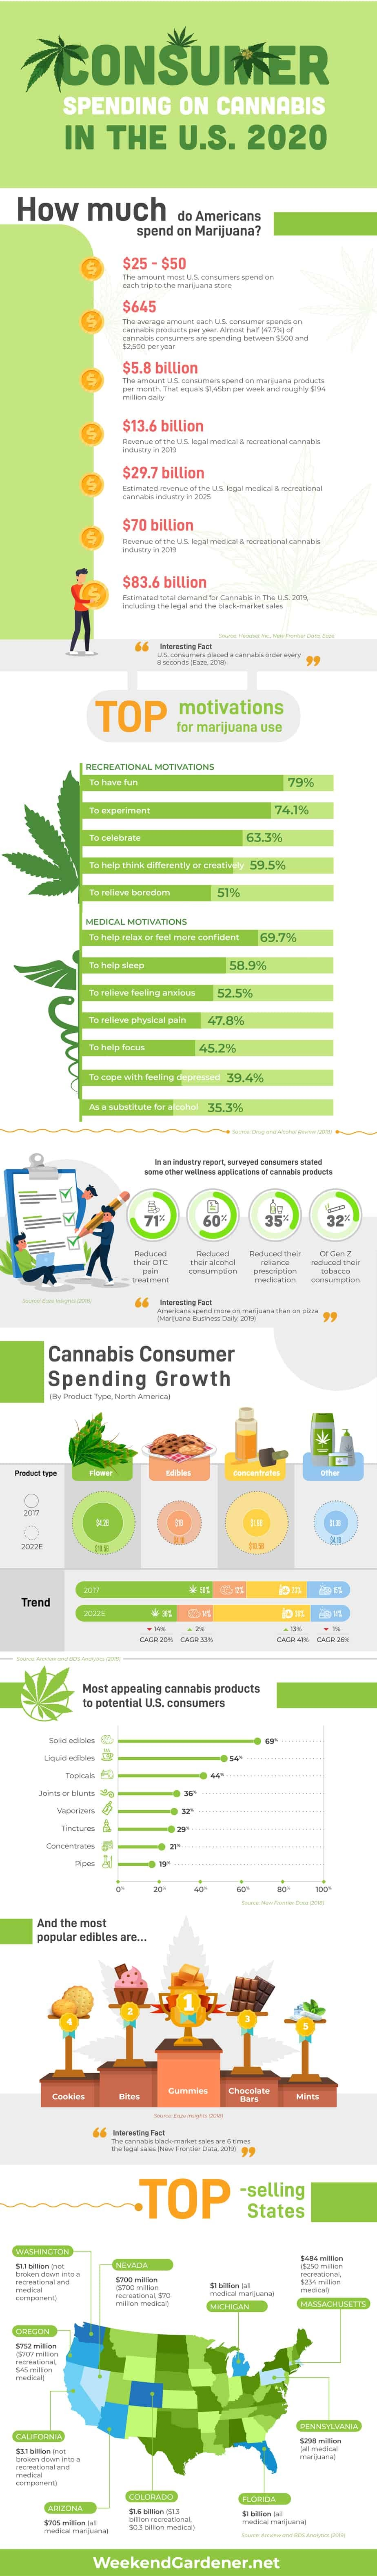 Consumer Spending on Cannabis in The U.S. 2020 #infographic